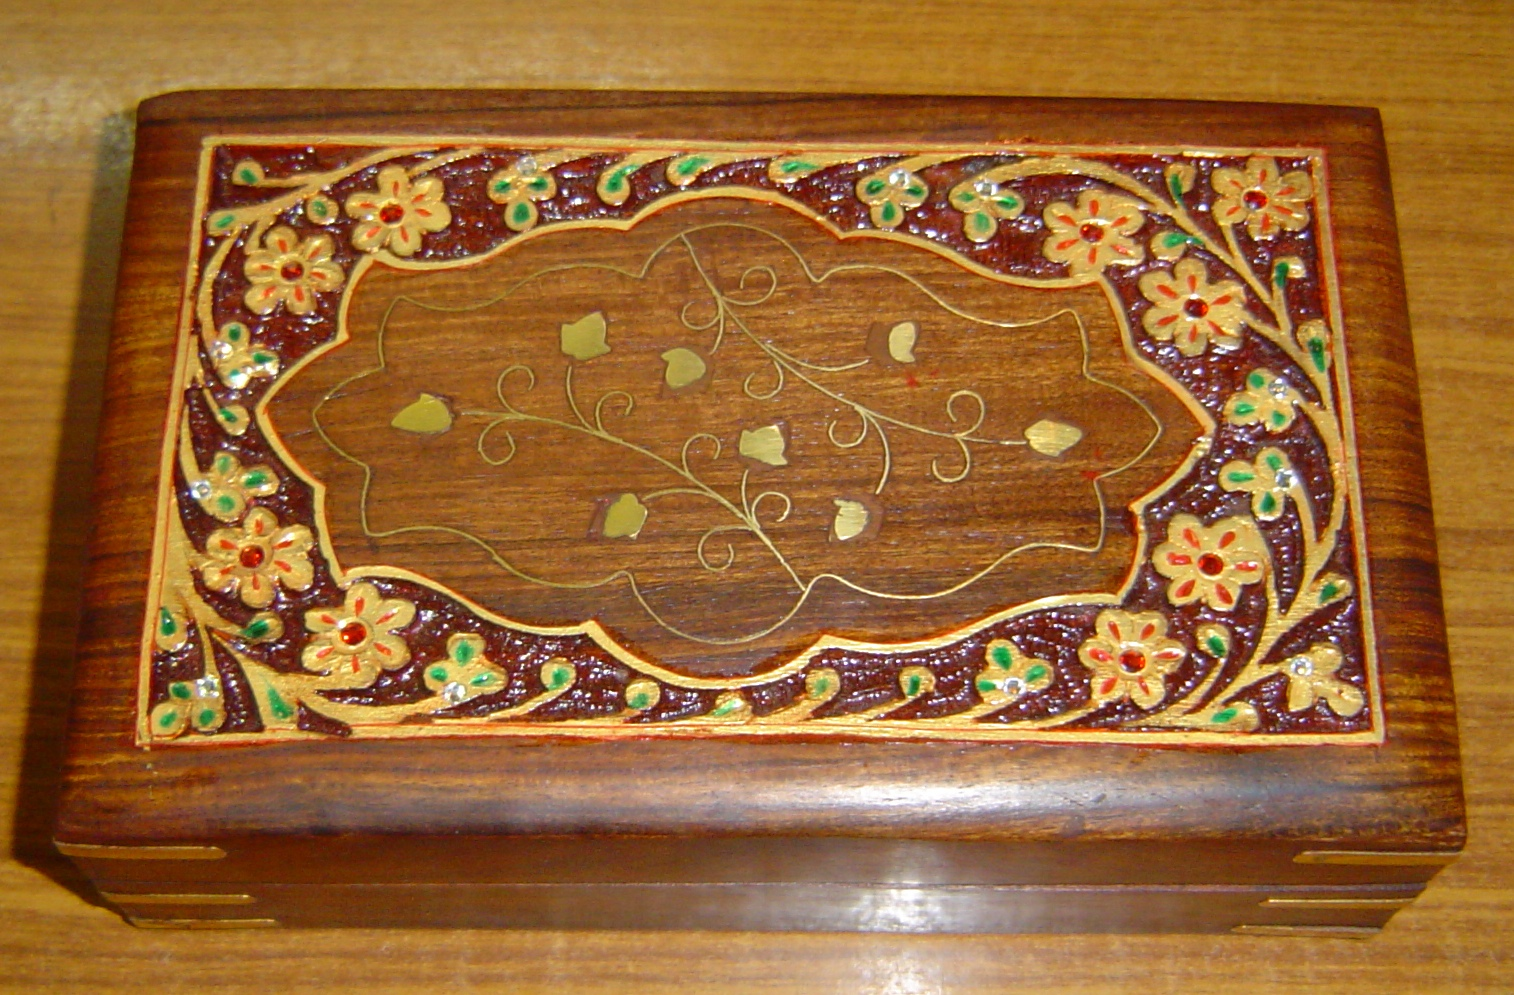 130030 Sheesham Wood carving and decorative box